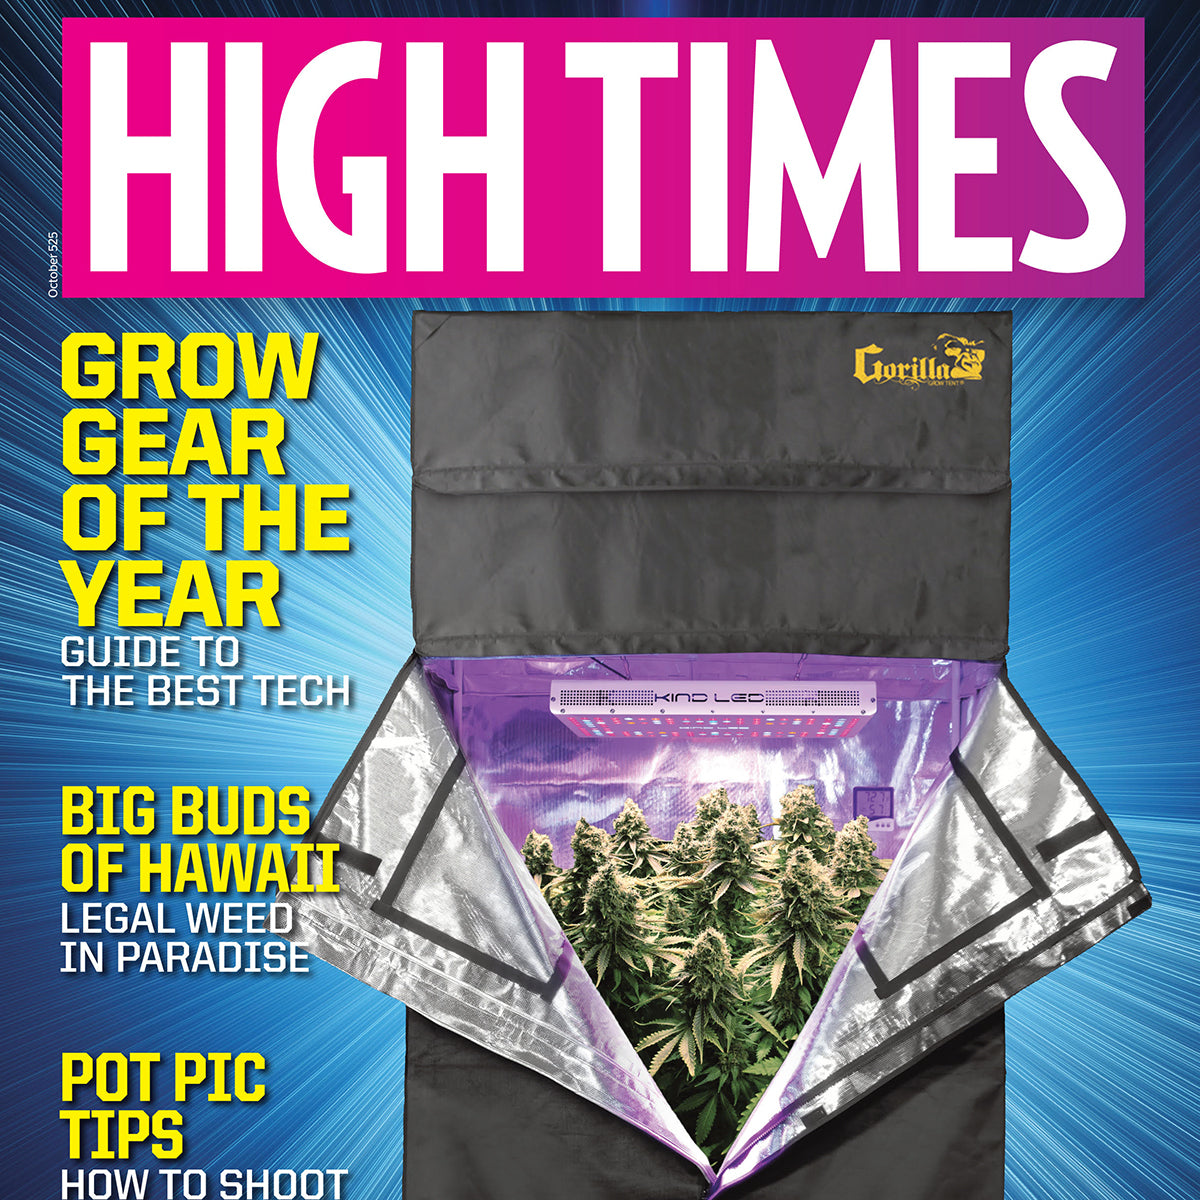 Kind LED Grow Lights Featured on the Cover of High Times